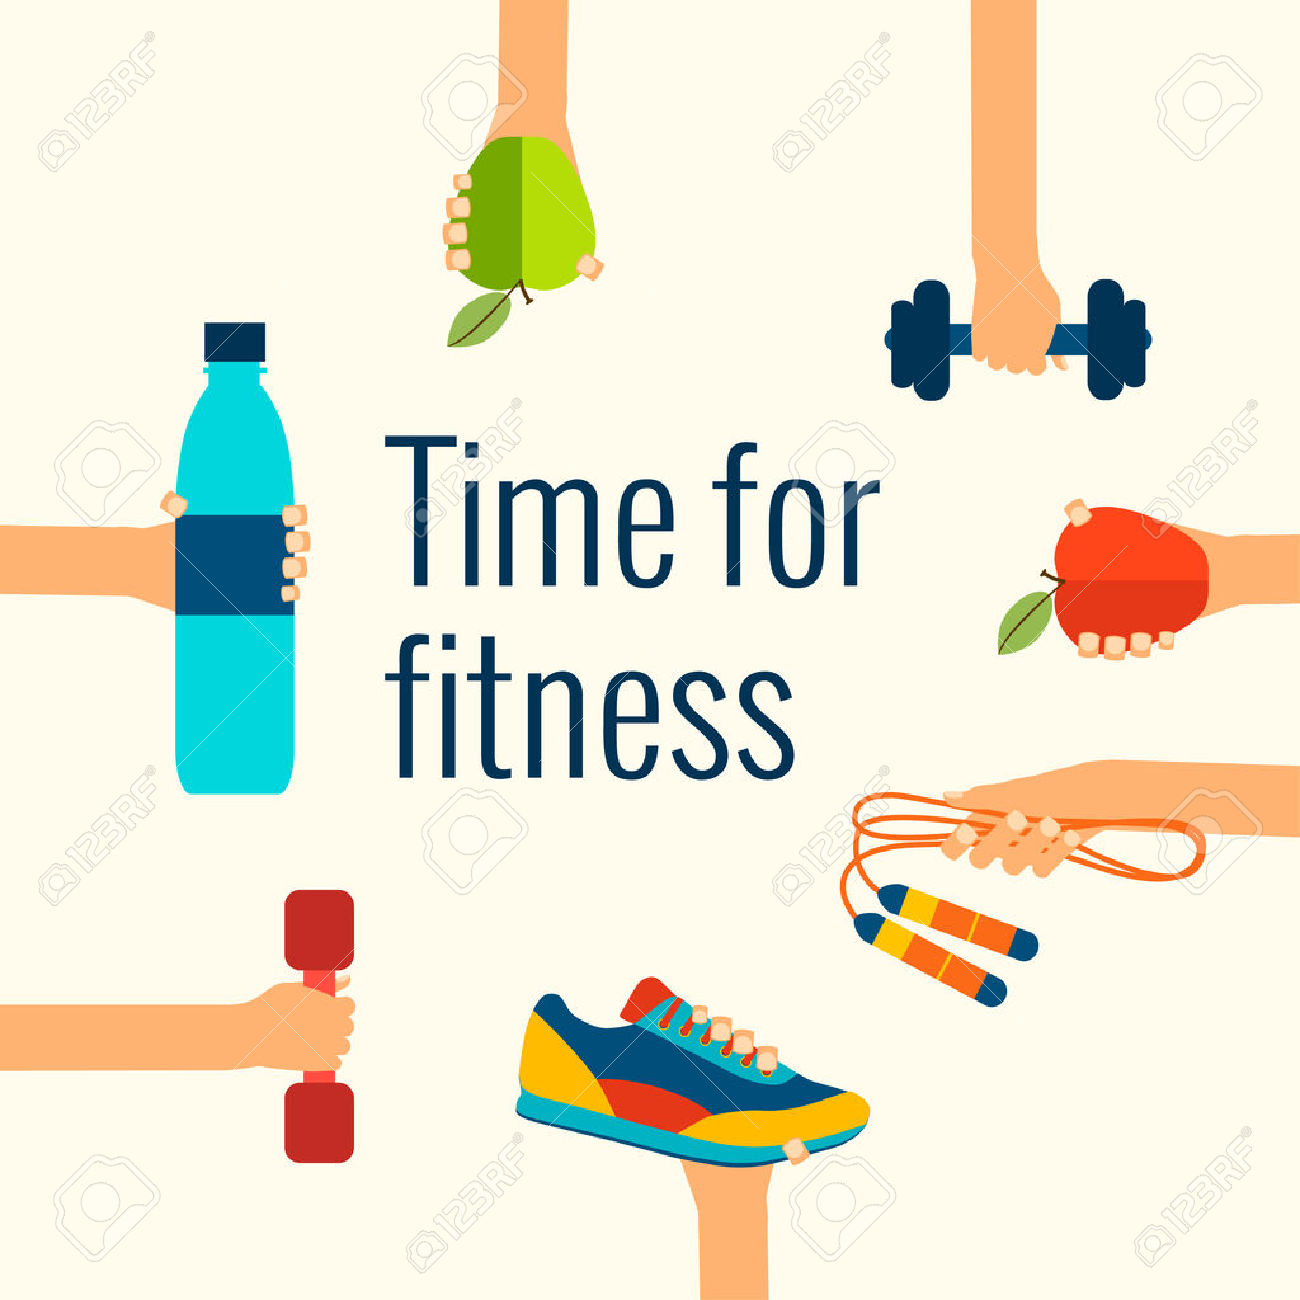 Abstract clipart fitness #14